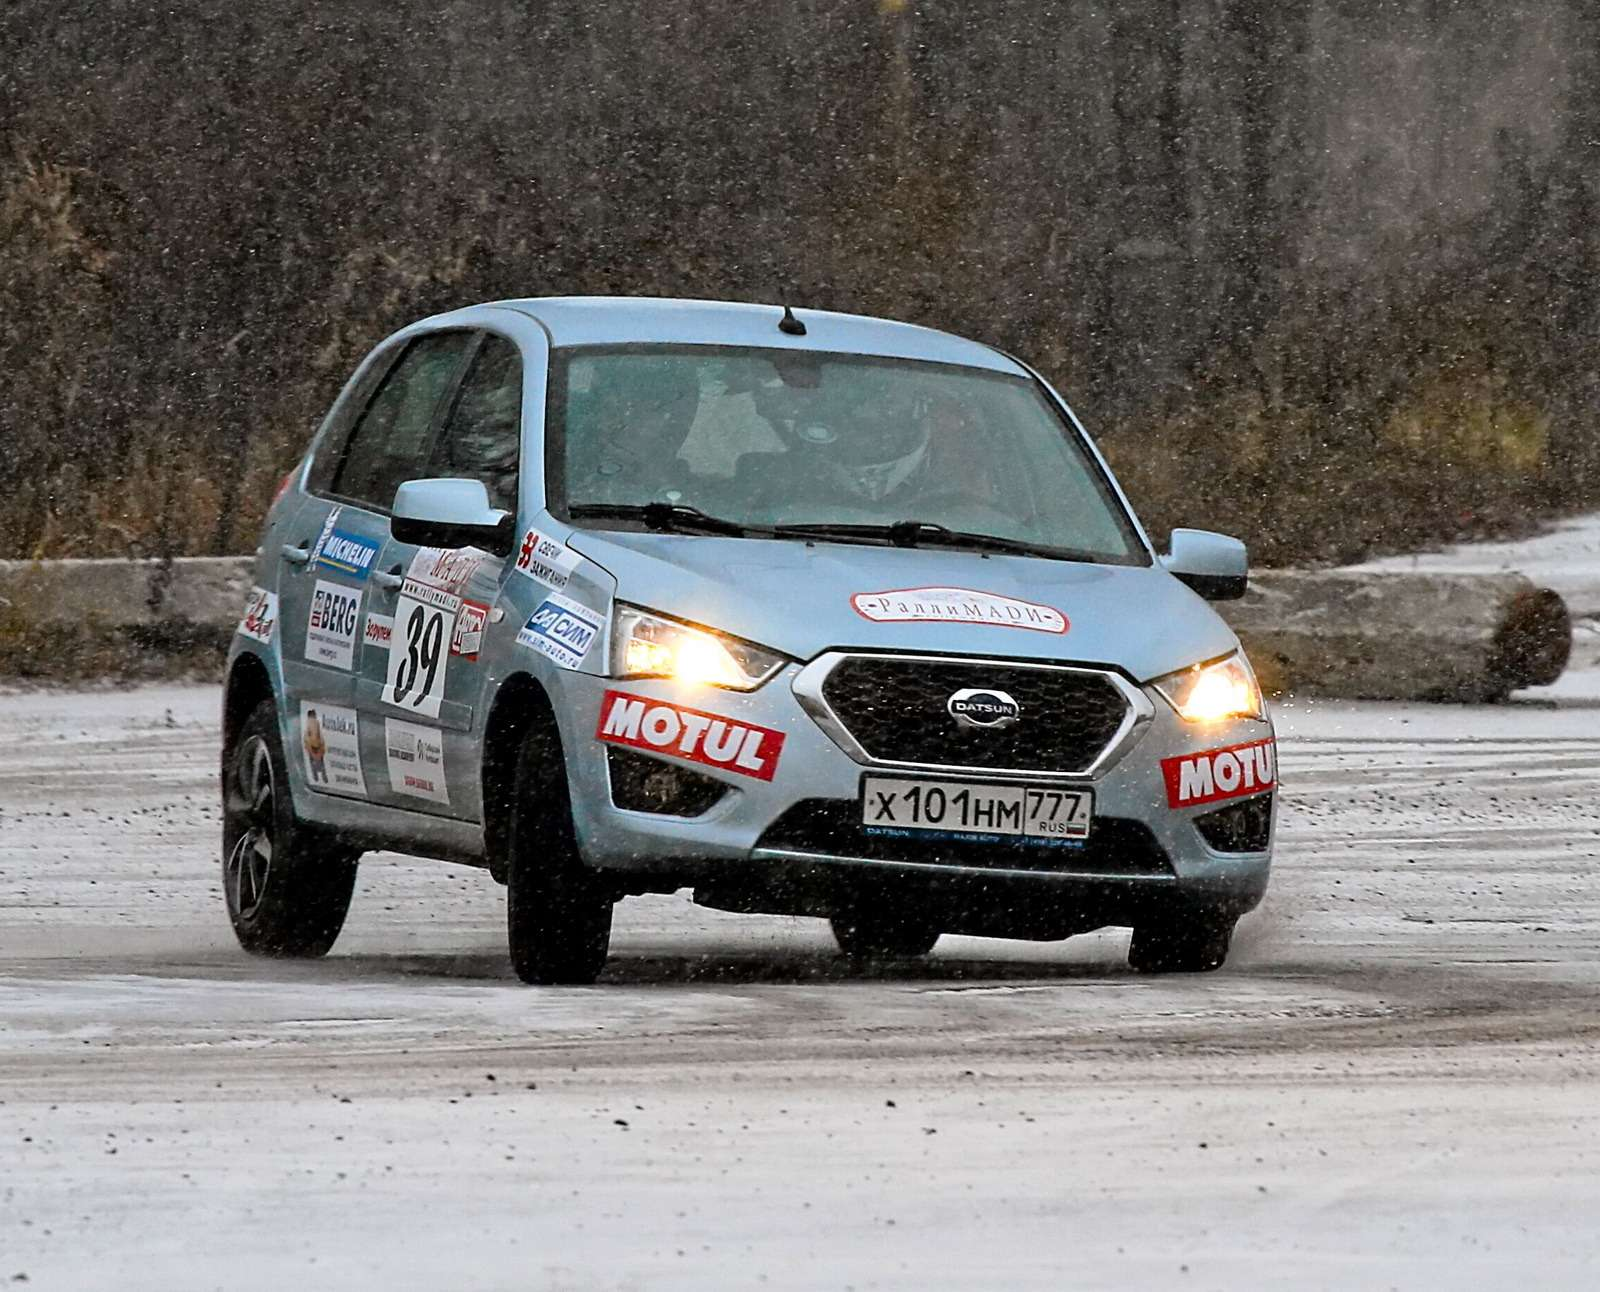 04 RALLY MADI_zr 02_16